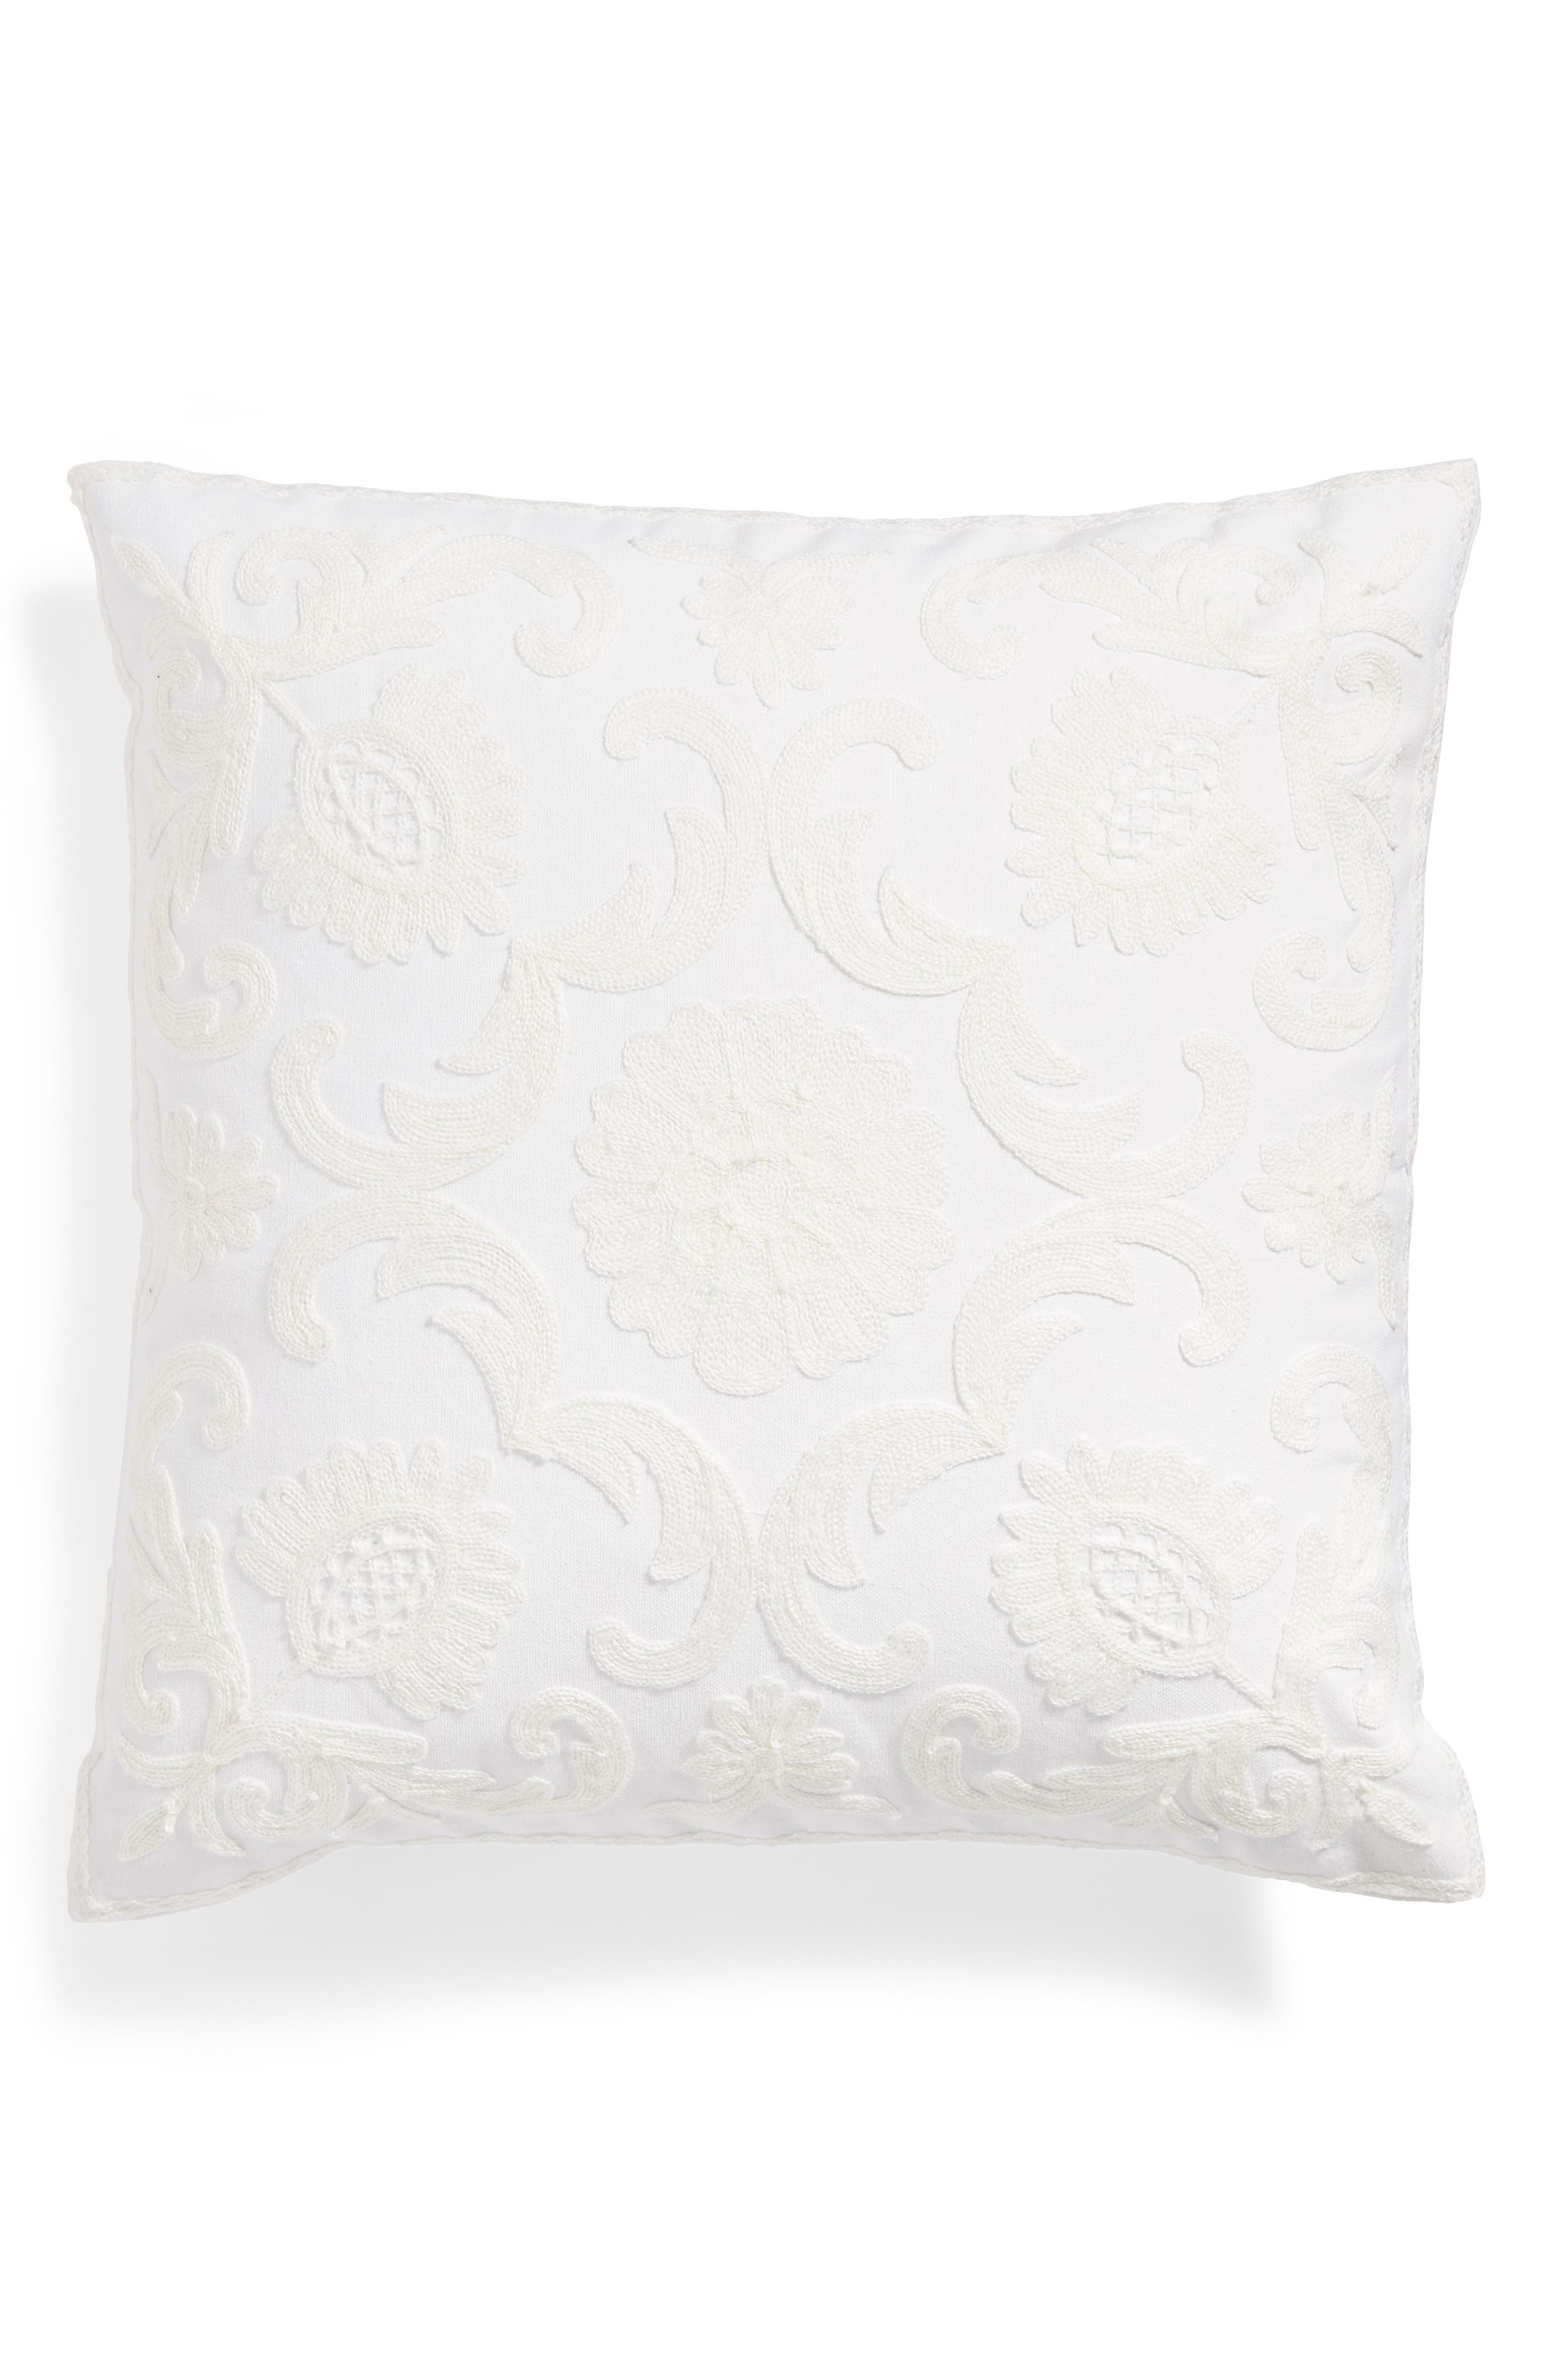 Bree Embroidered Accent Pillow,                         Main,                         color, 100